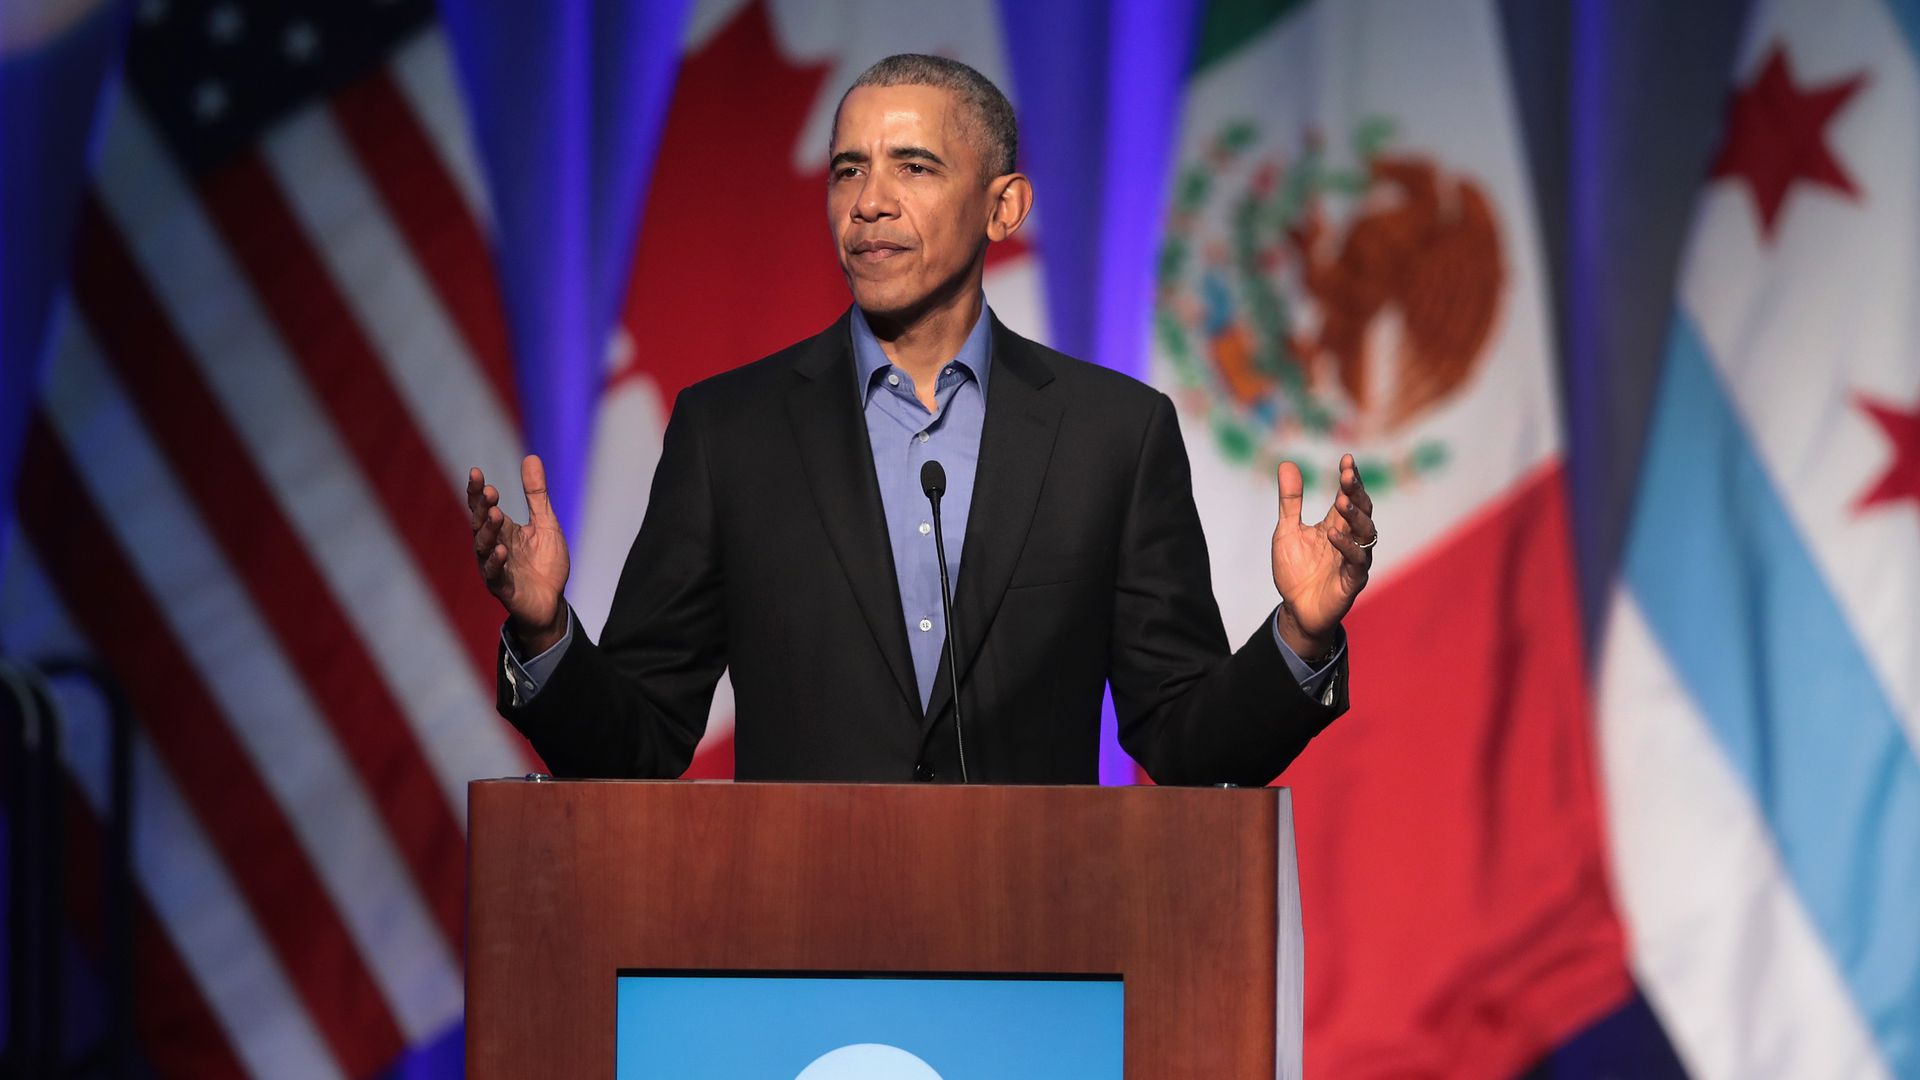 Former president Obama gives a speech in Chicago